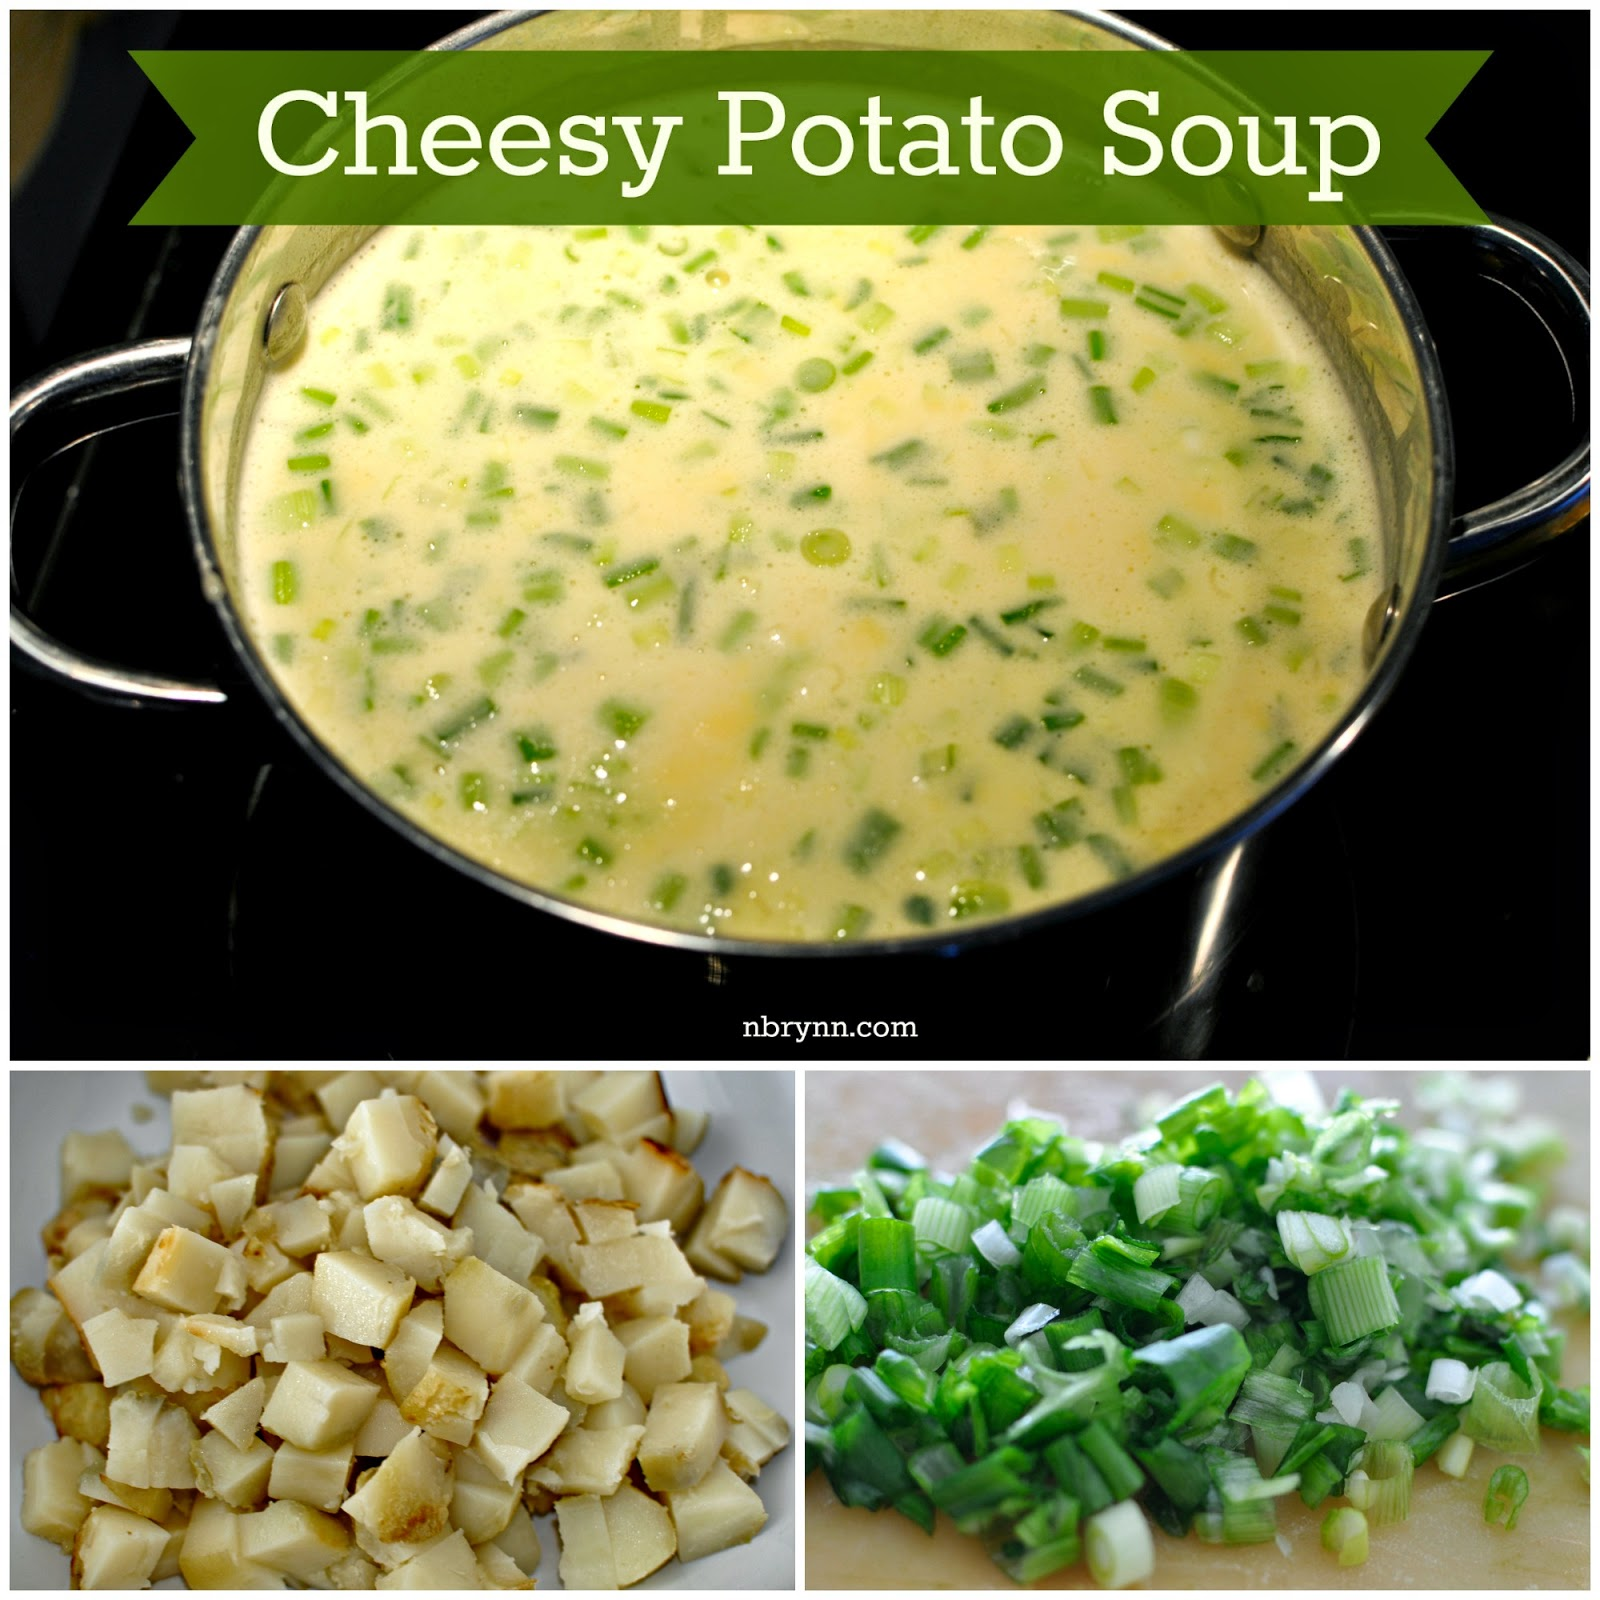 NBrynn: Mama's Cheesy Potato Soup